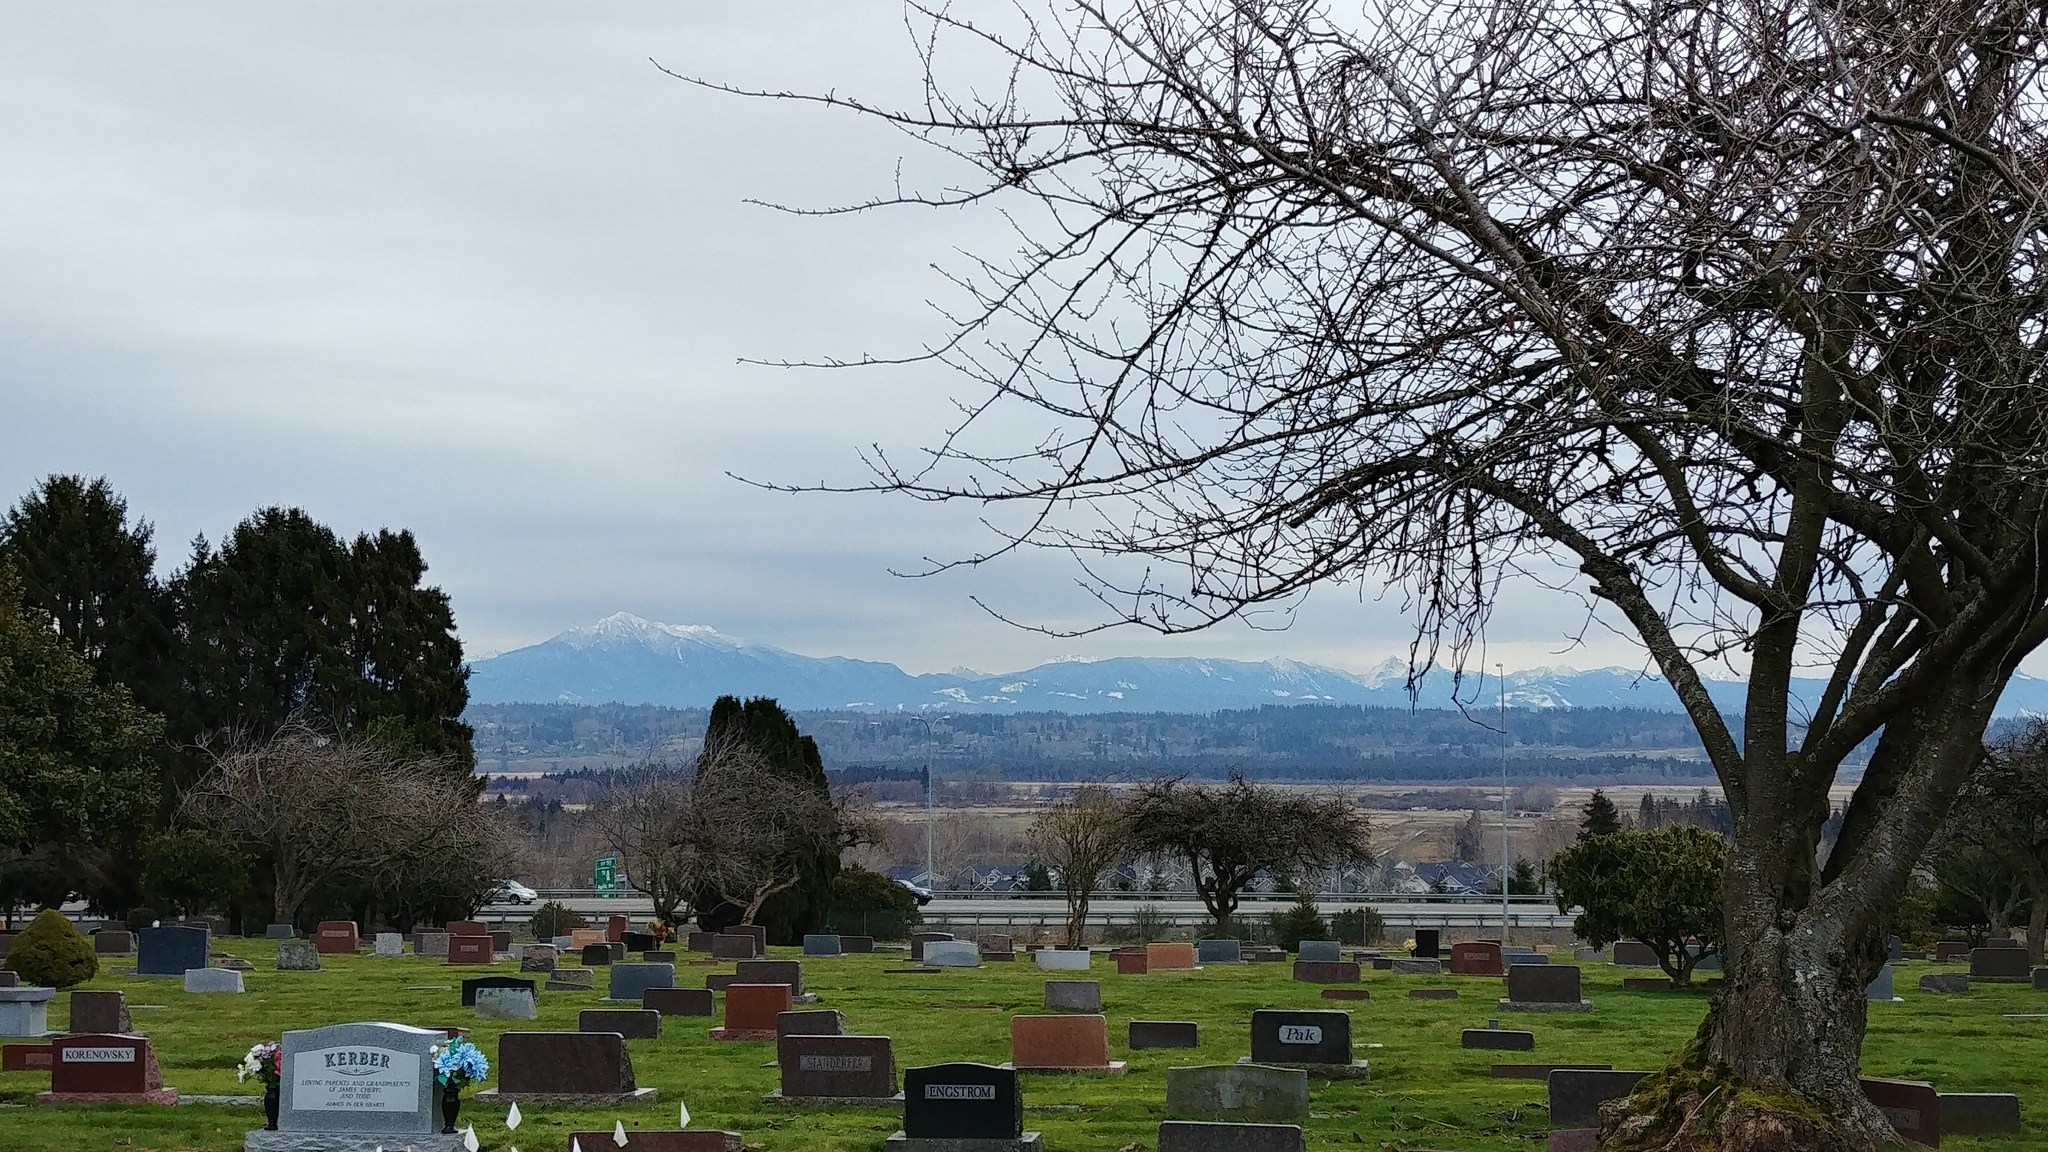 Peaceful, gorgeous views from Evergreen Cemetery and Cypress Lawn Memorial Park // Christopher Bragg